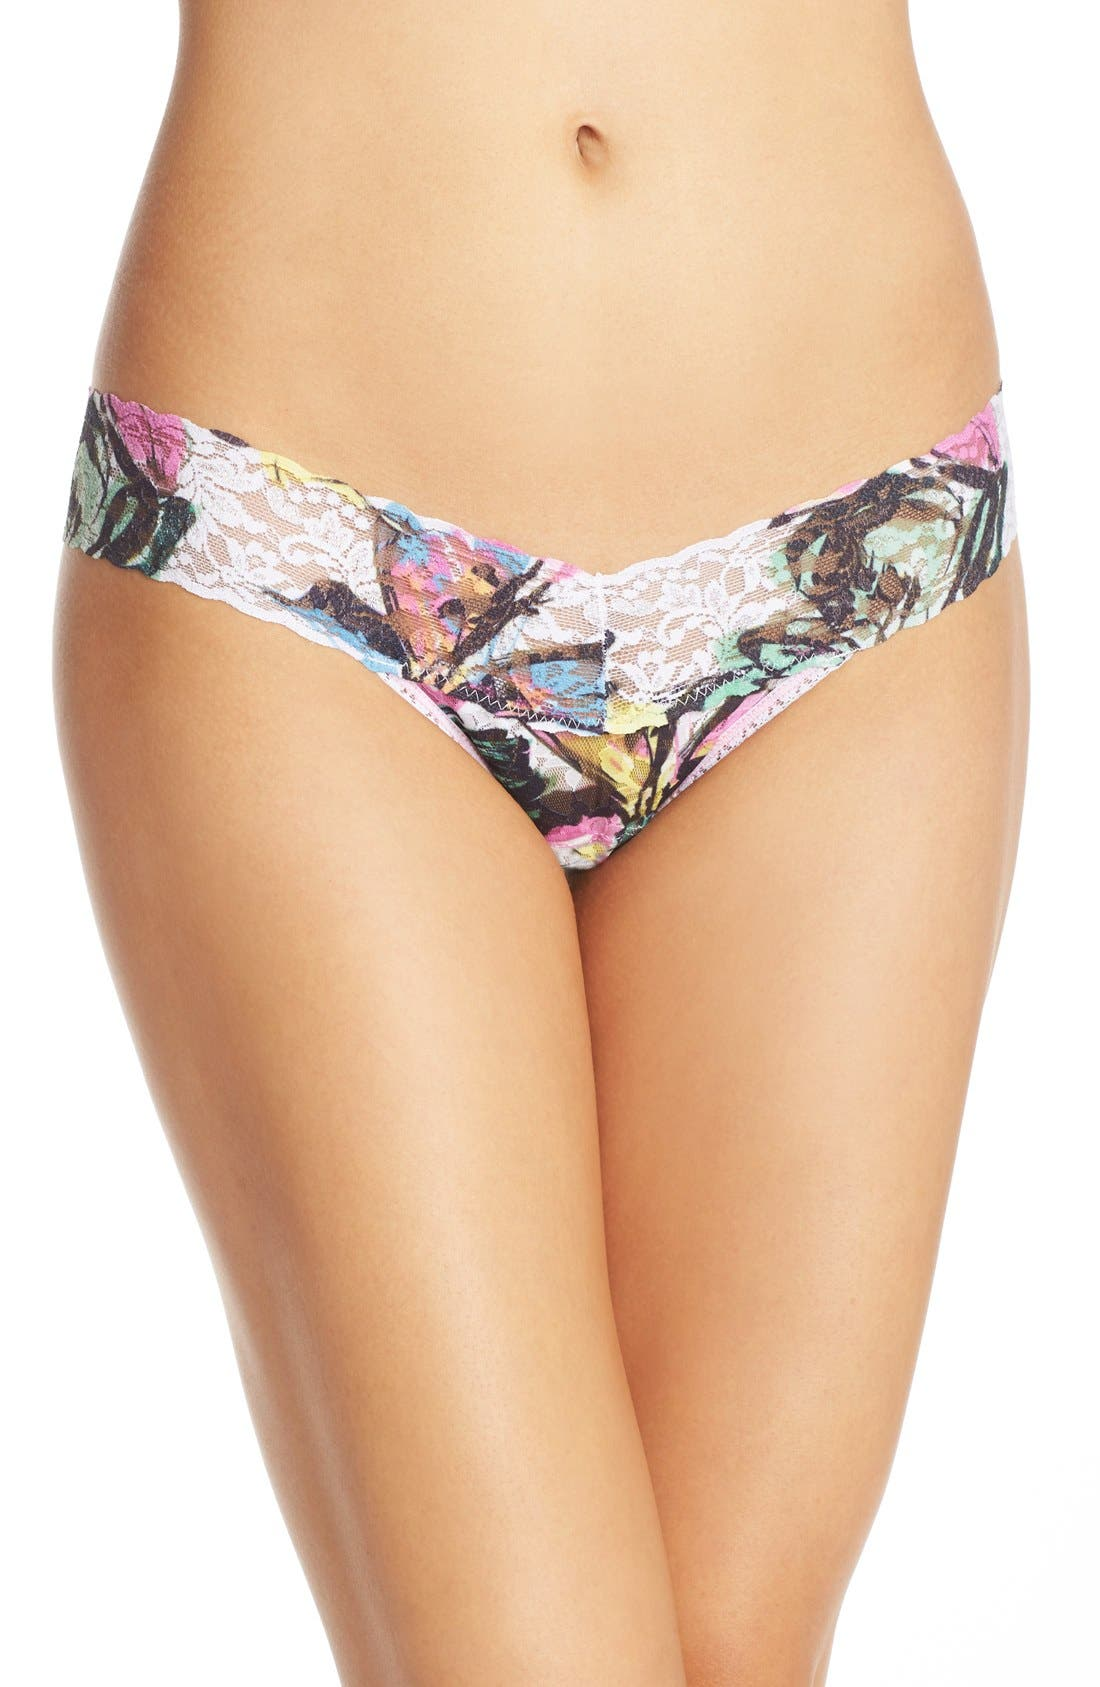 Alternate Image 1 Selected - Hanky Panky 'Tropical Bloom' Low Rise Thong